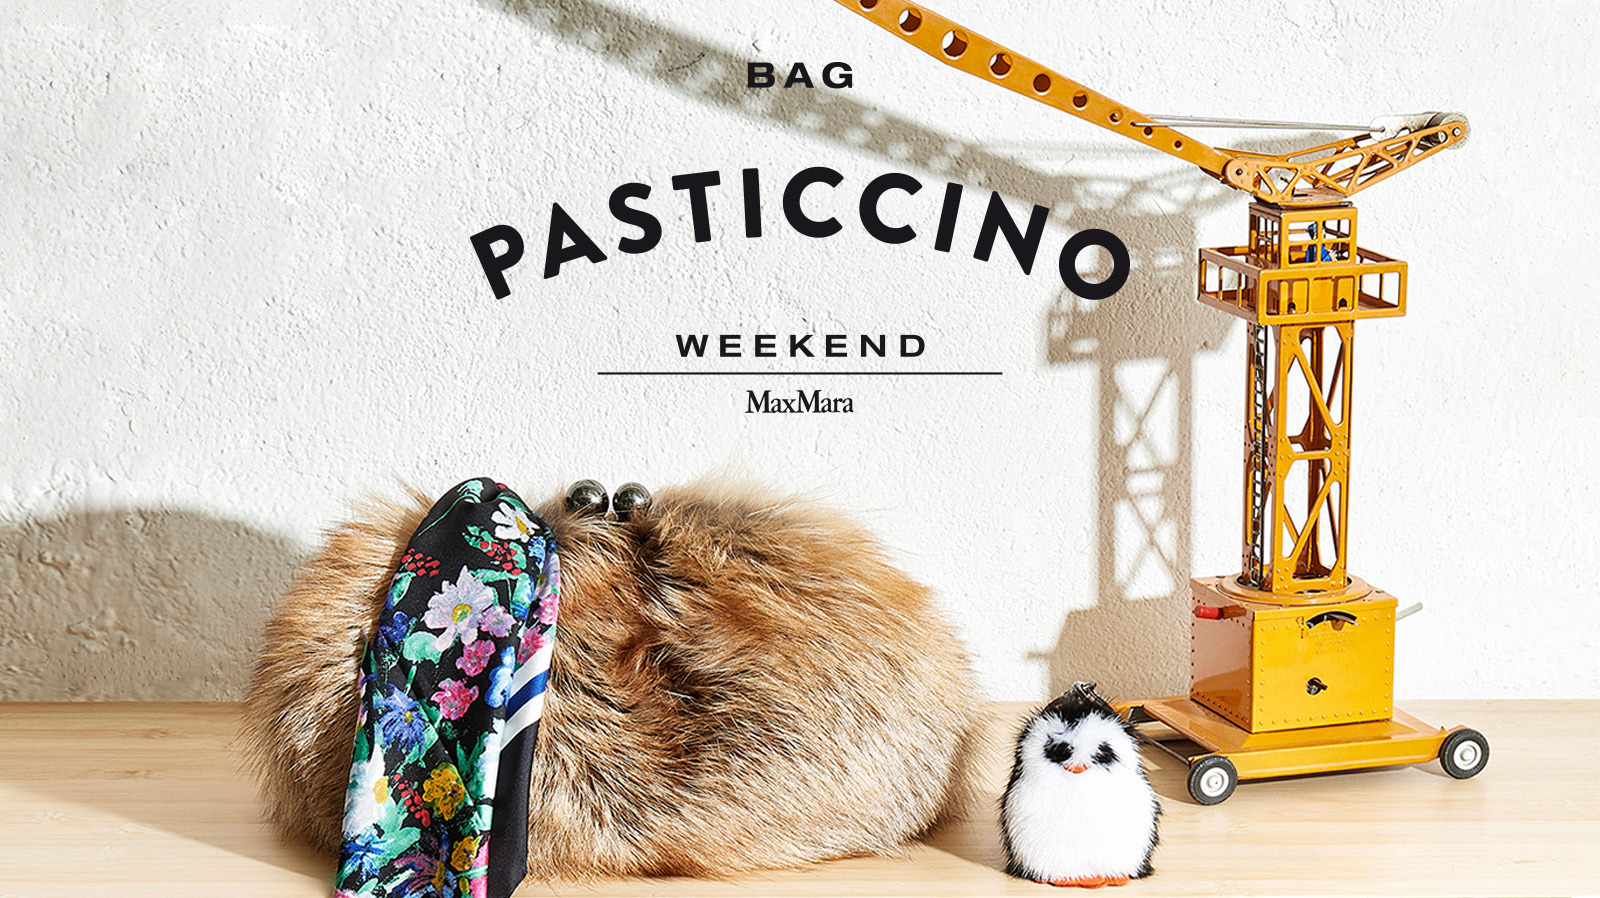 Pasticcino 01 12c Weekend Max Mara